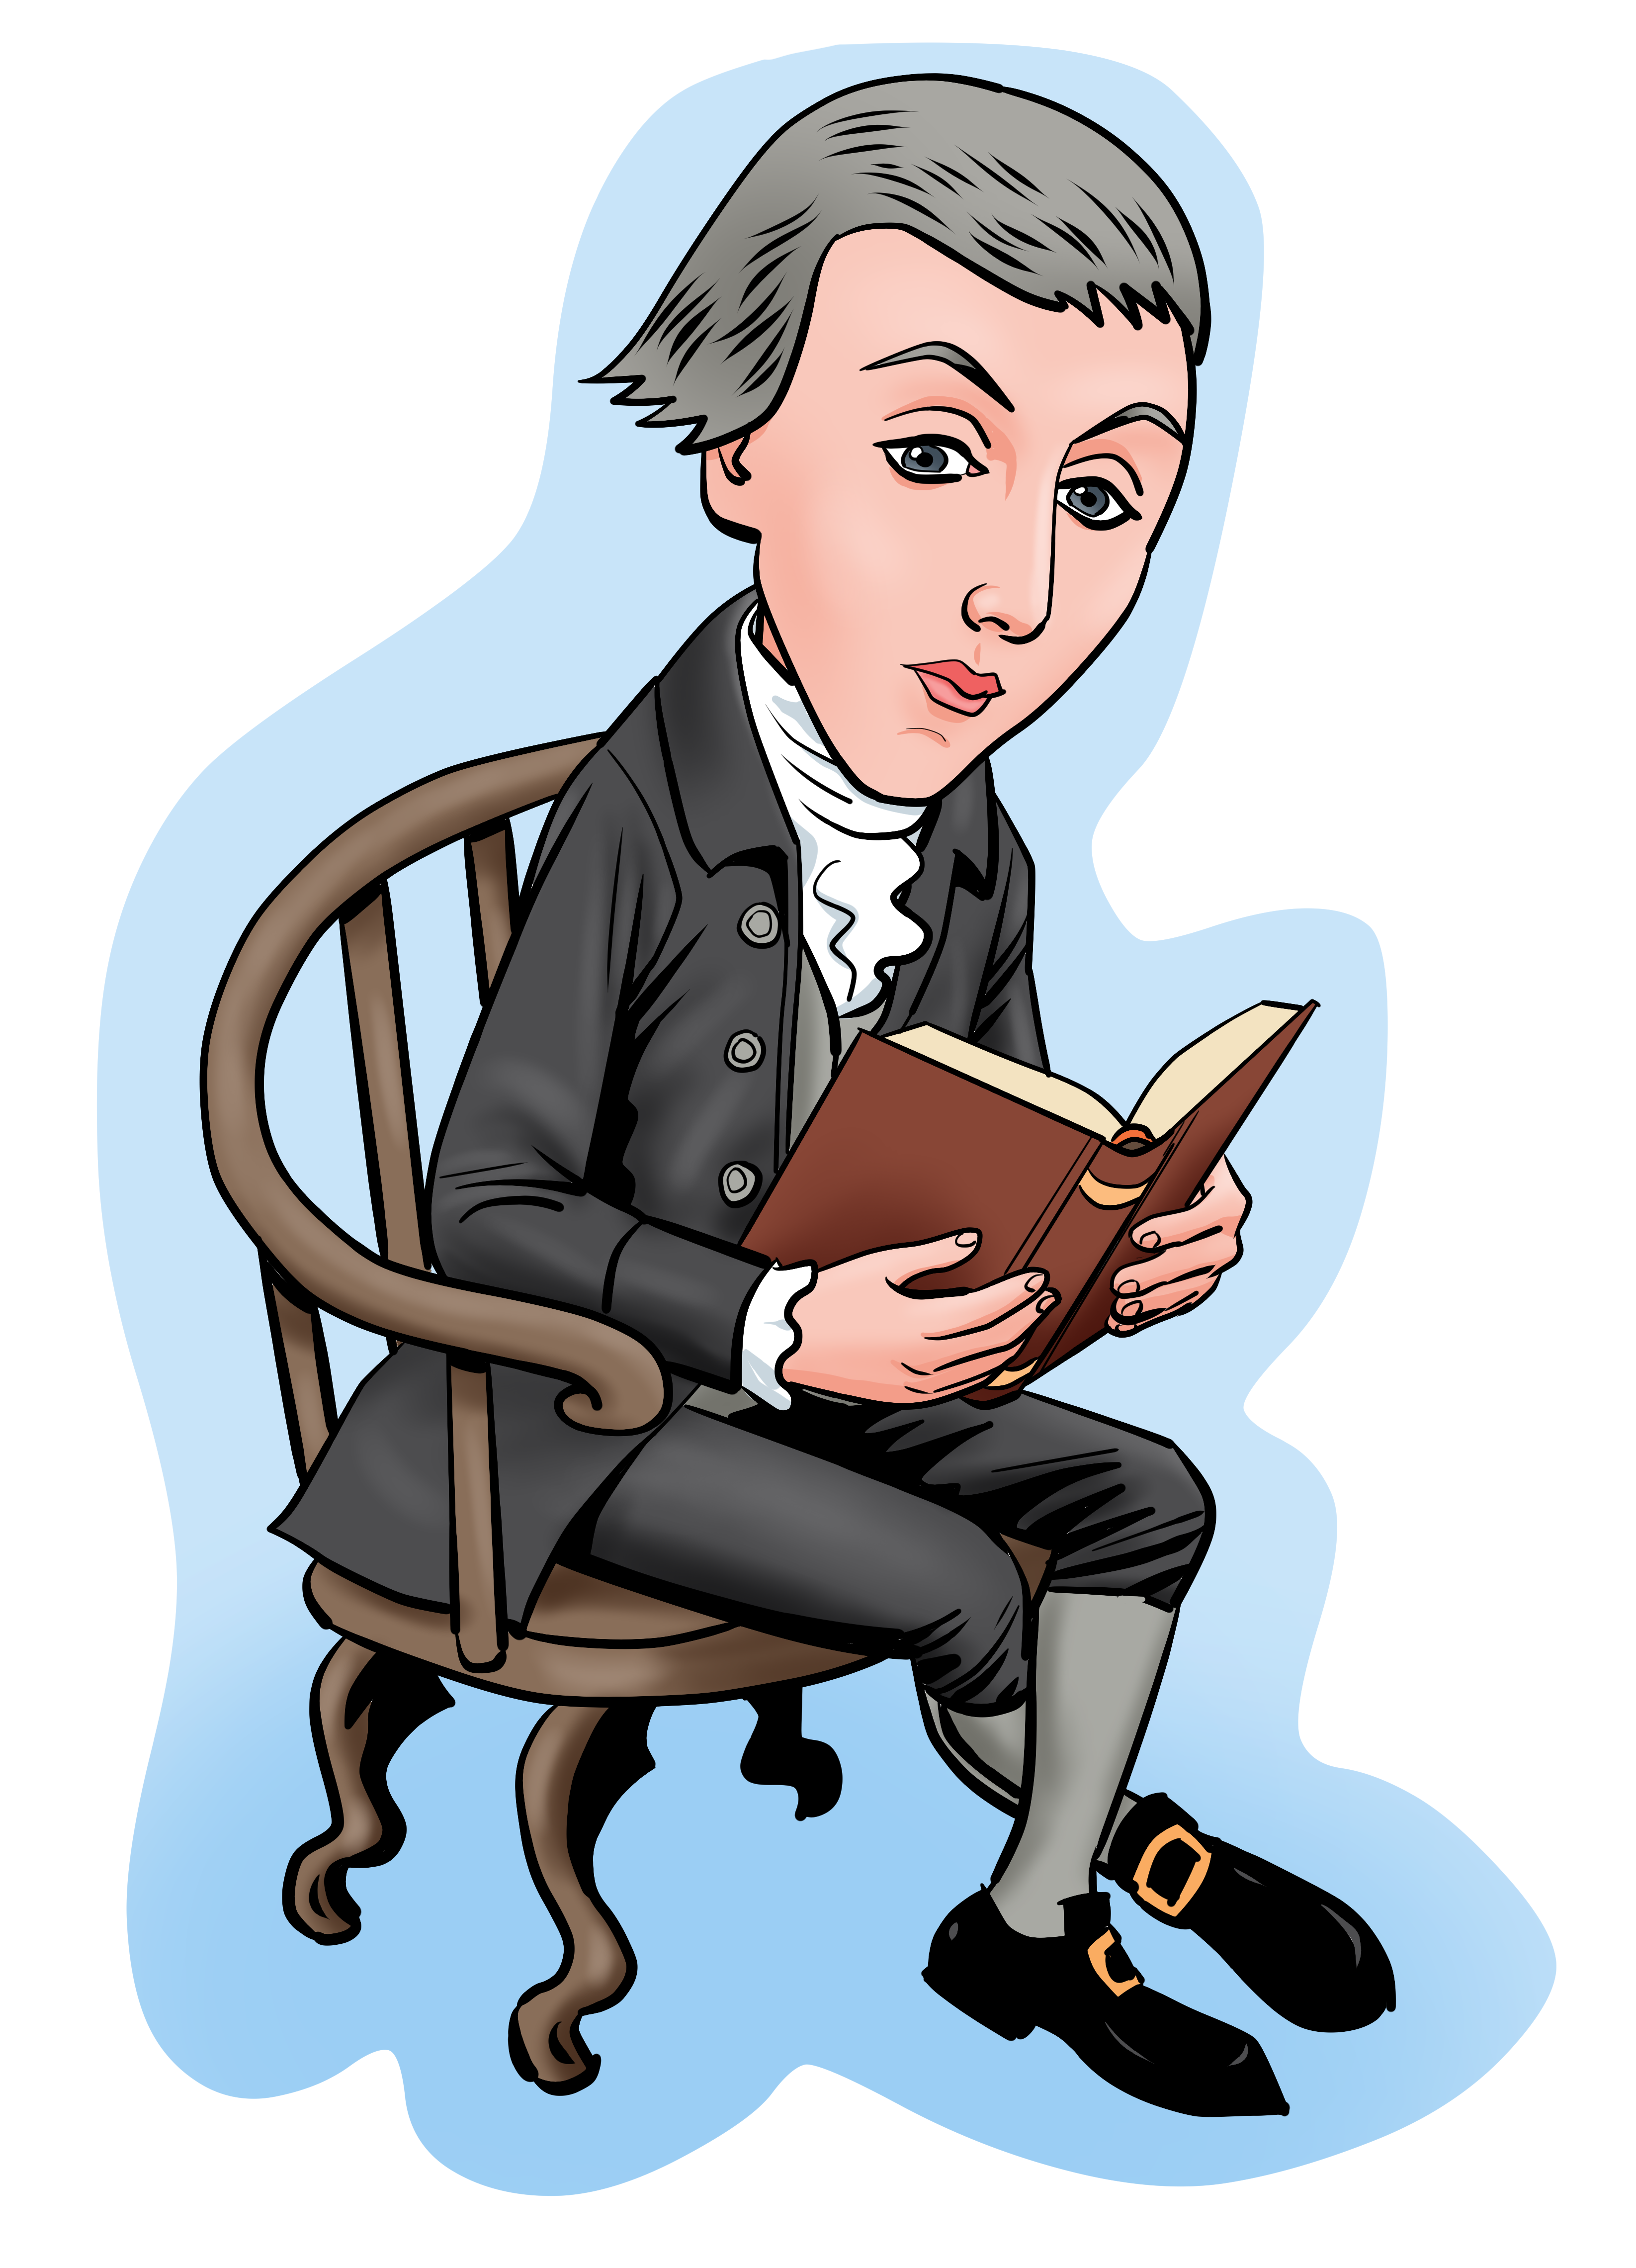 American revolution clipart founding father.